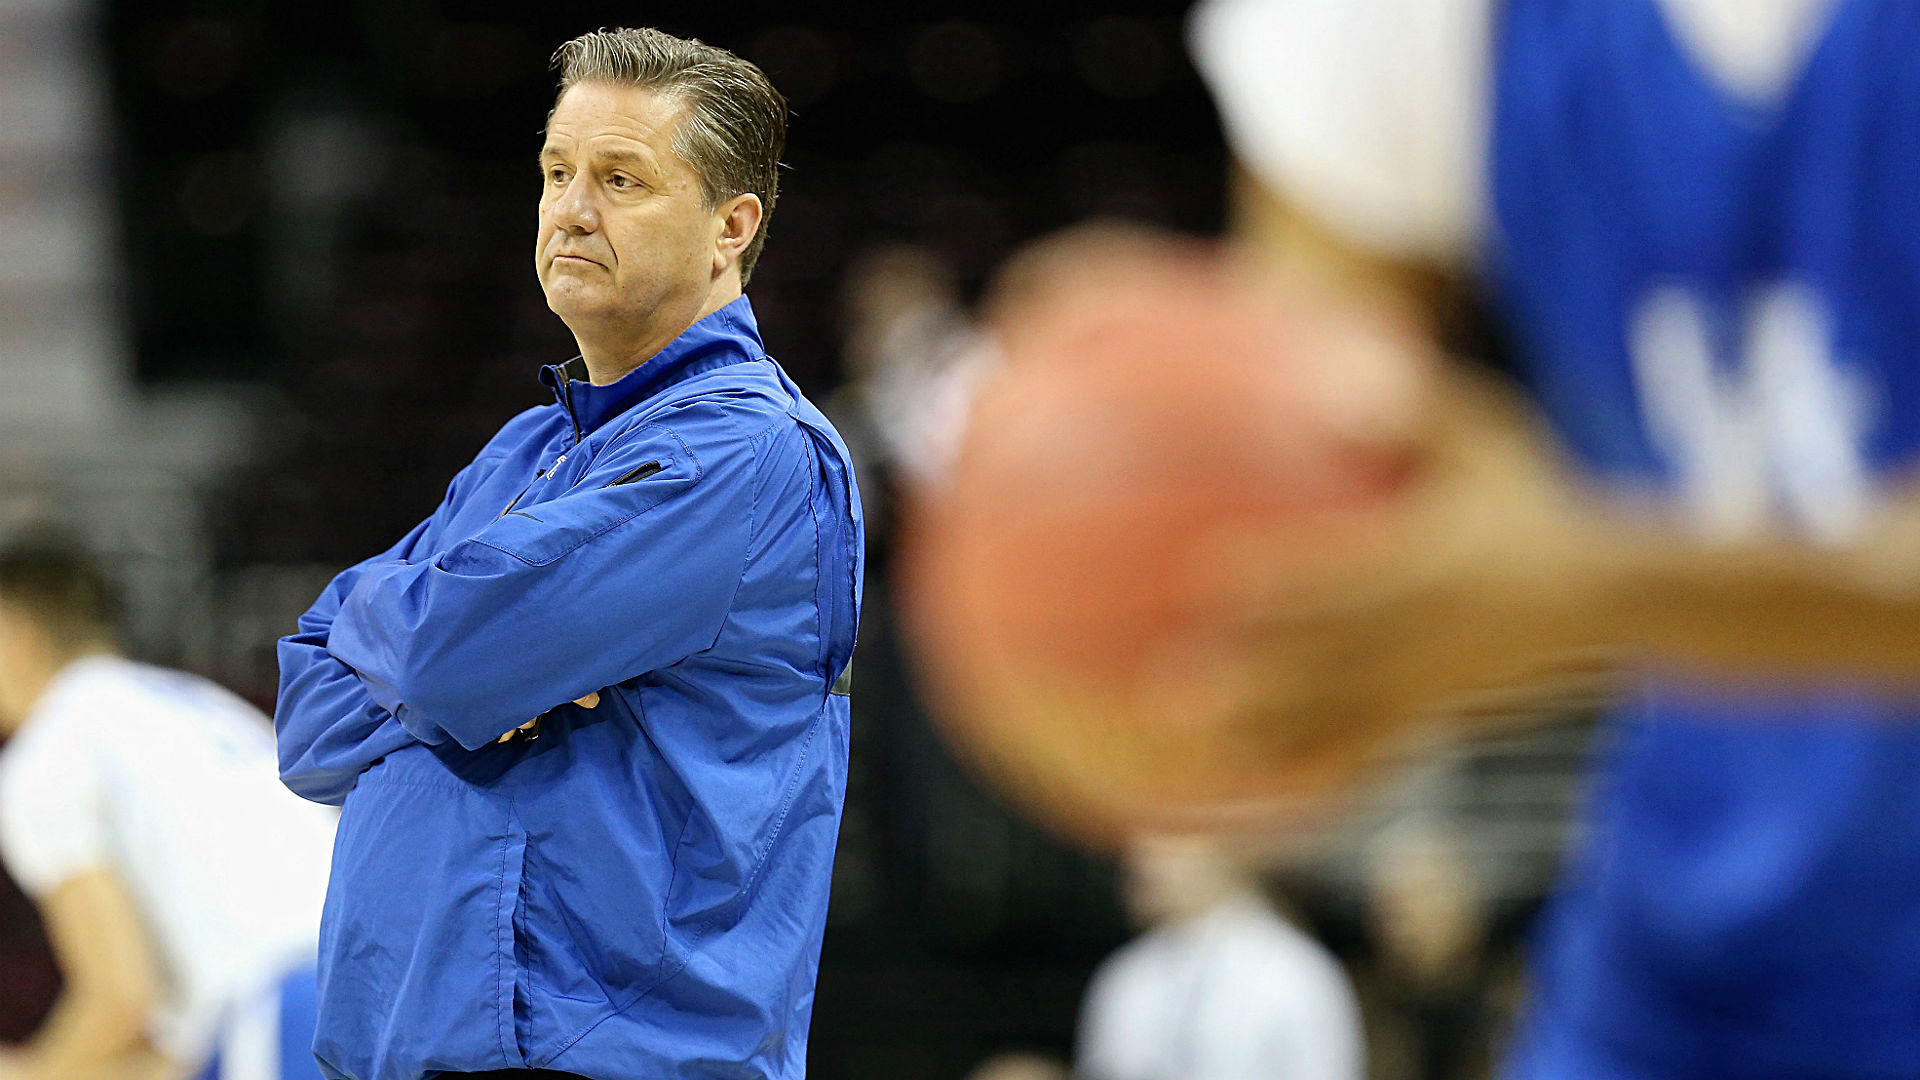 Calipari: 'It never entered my mind that we were going to lose'